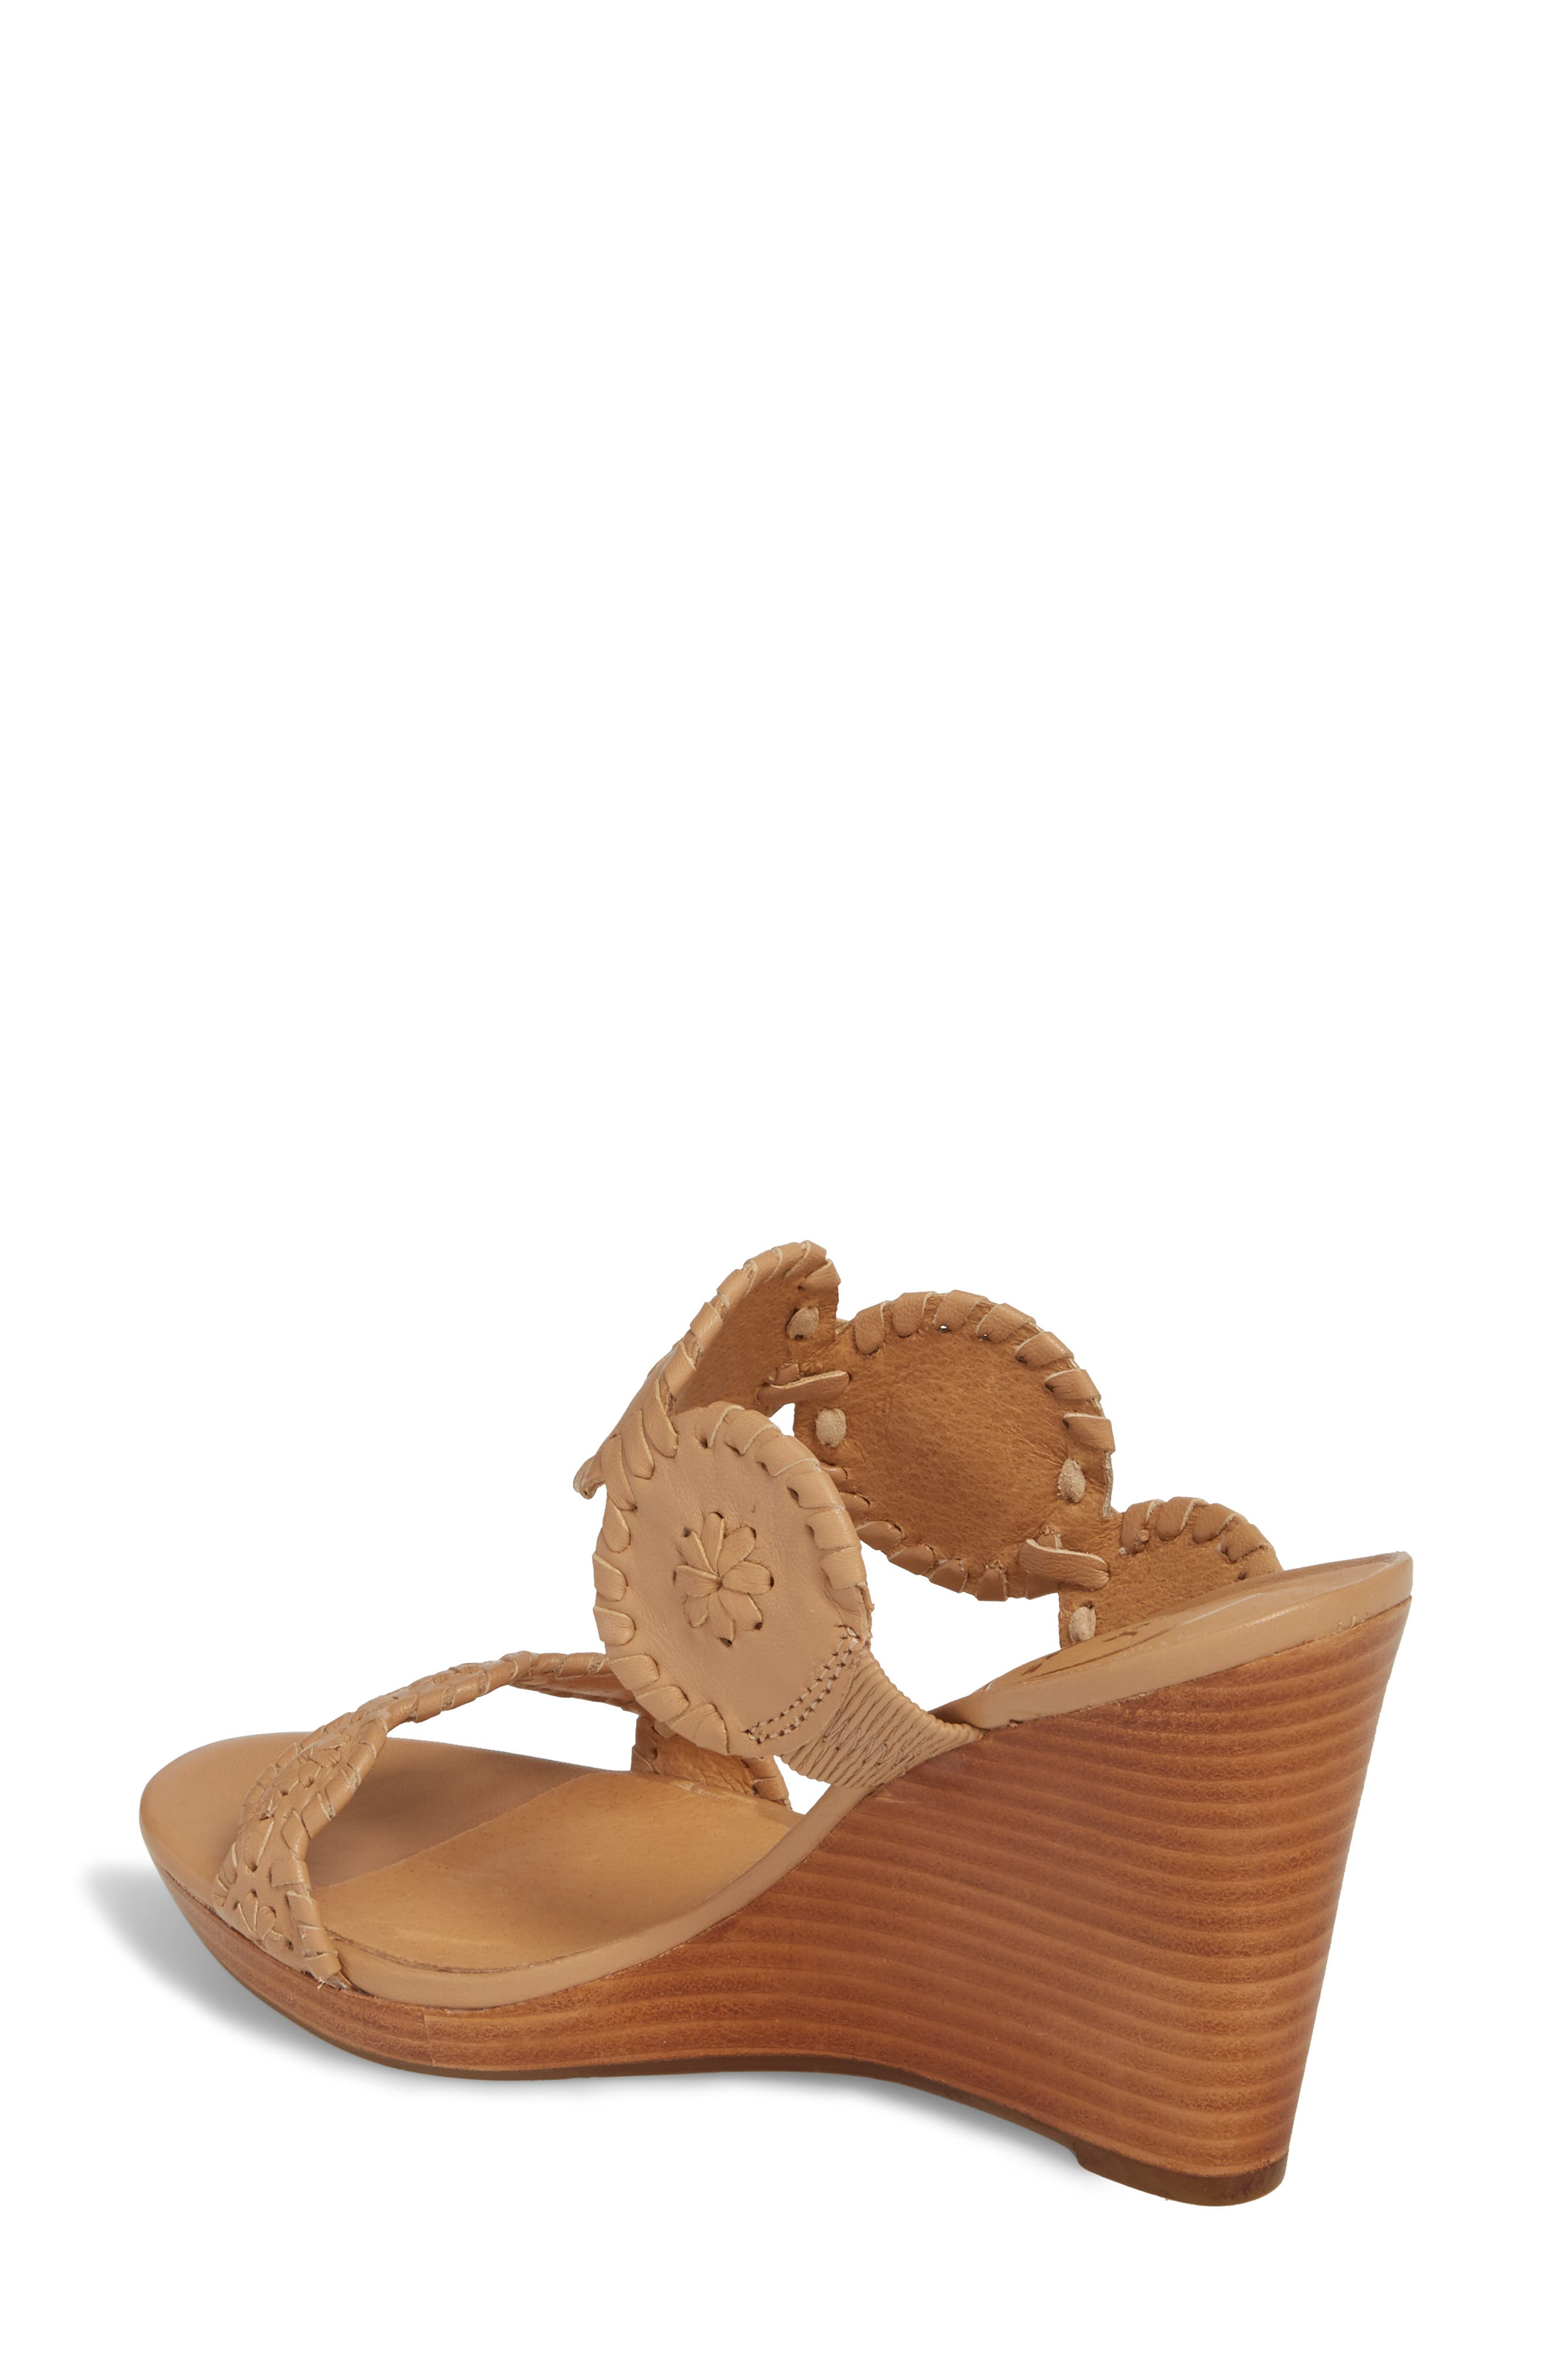 JACK ROGERS,                             'Luccia' Sandal,                             Alternate thumbnail 2, color,                             250